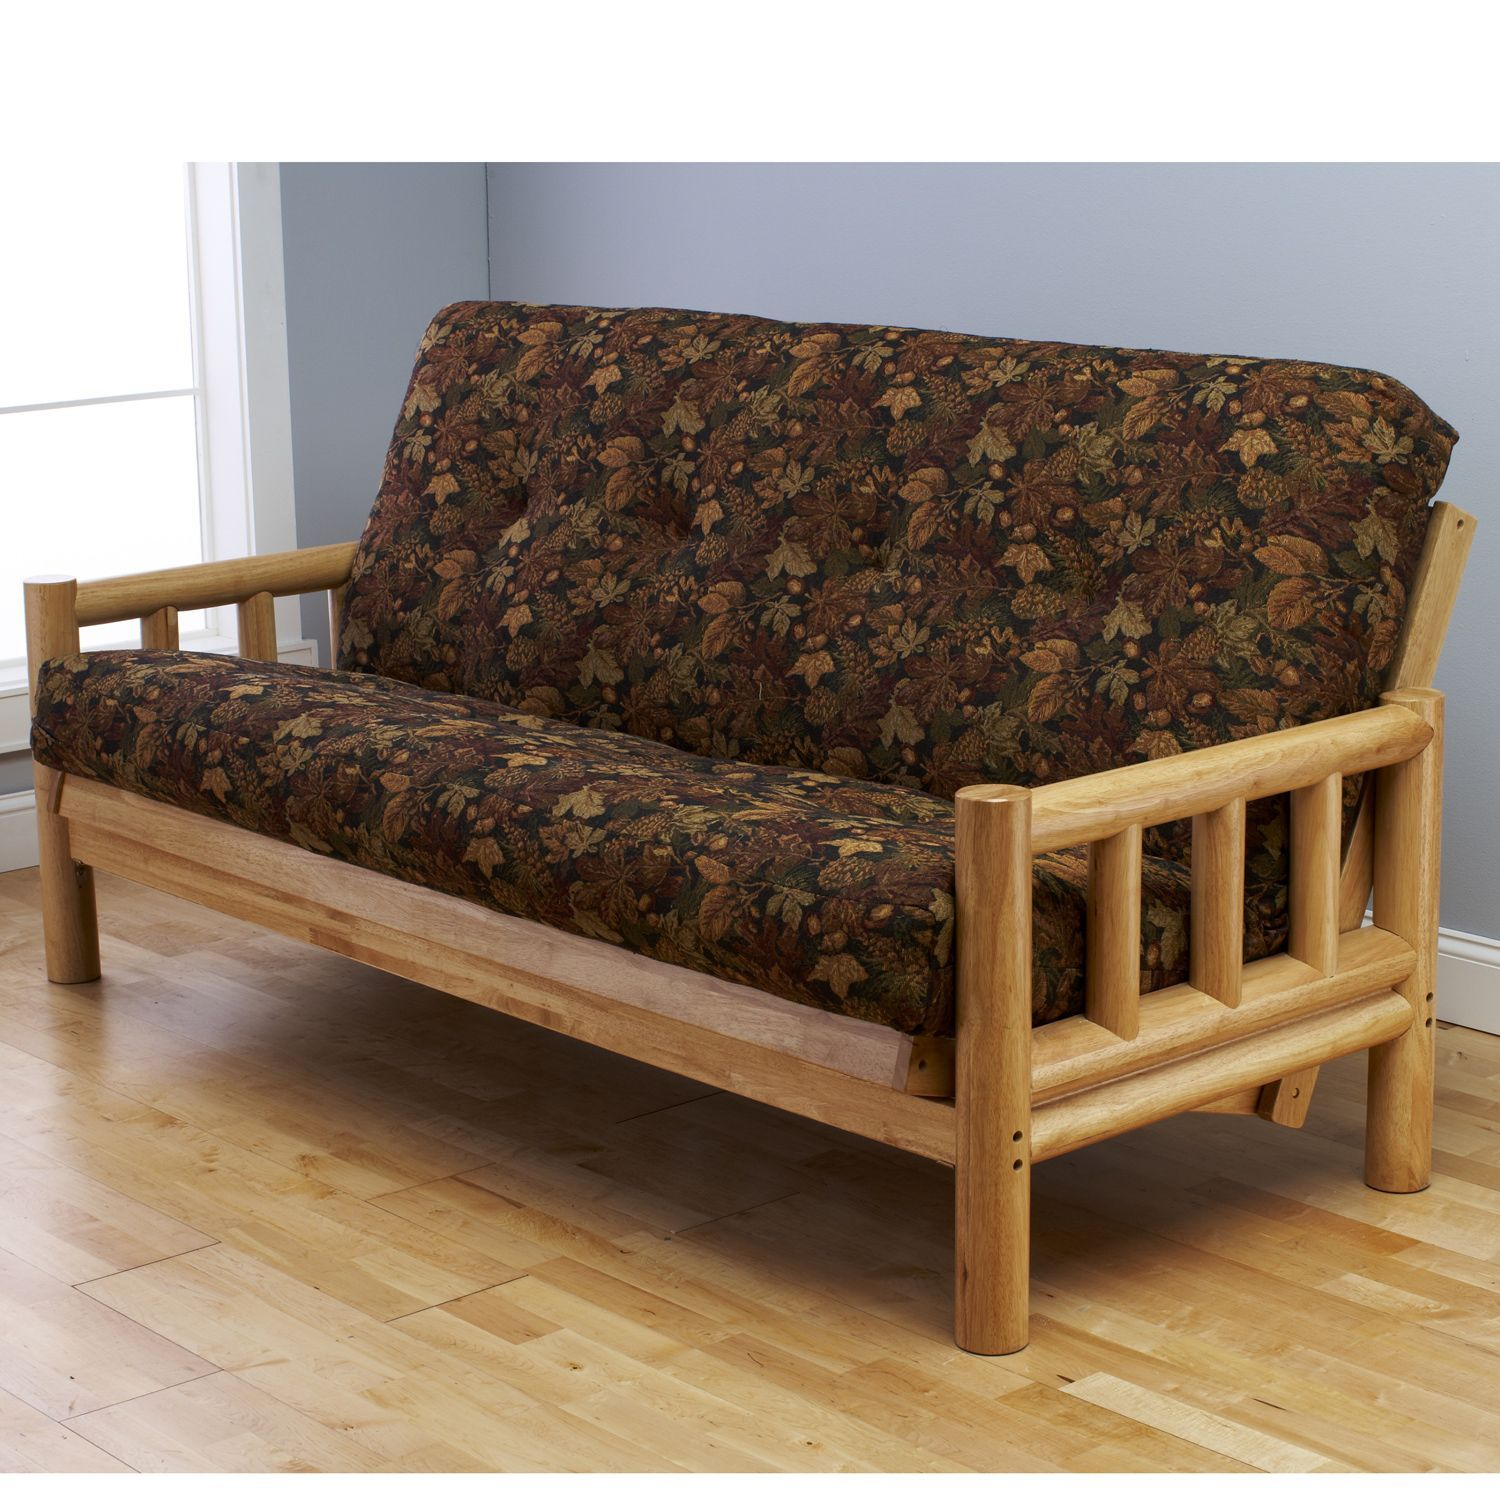 Somette Aspen Lodge Natural Full Size Futon Frame With Autumn Leaf Innerspring Mattress Set By